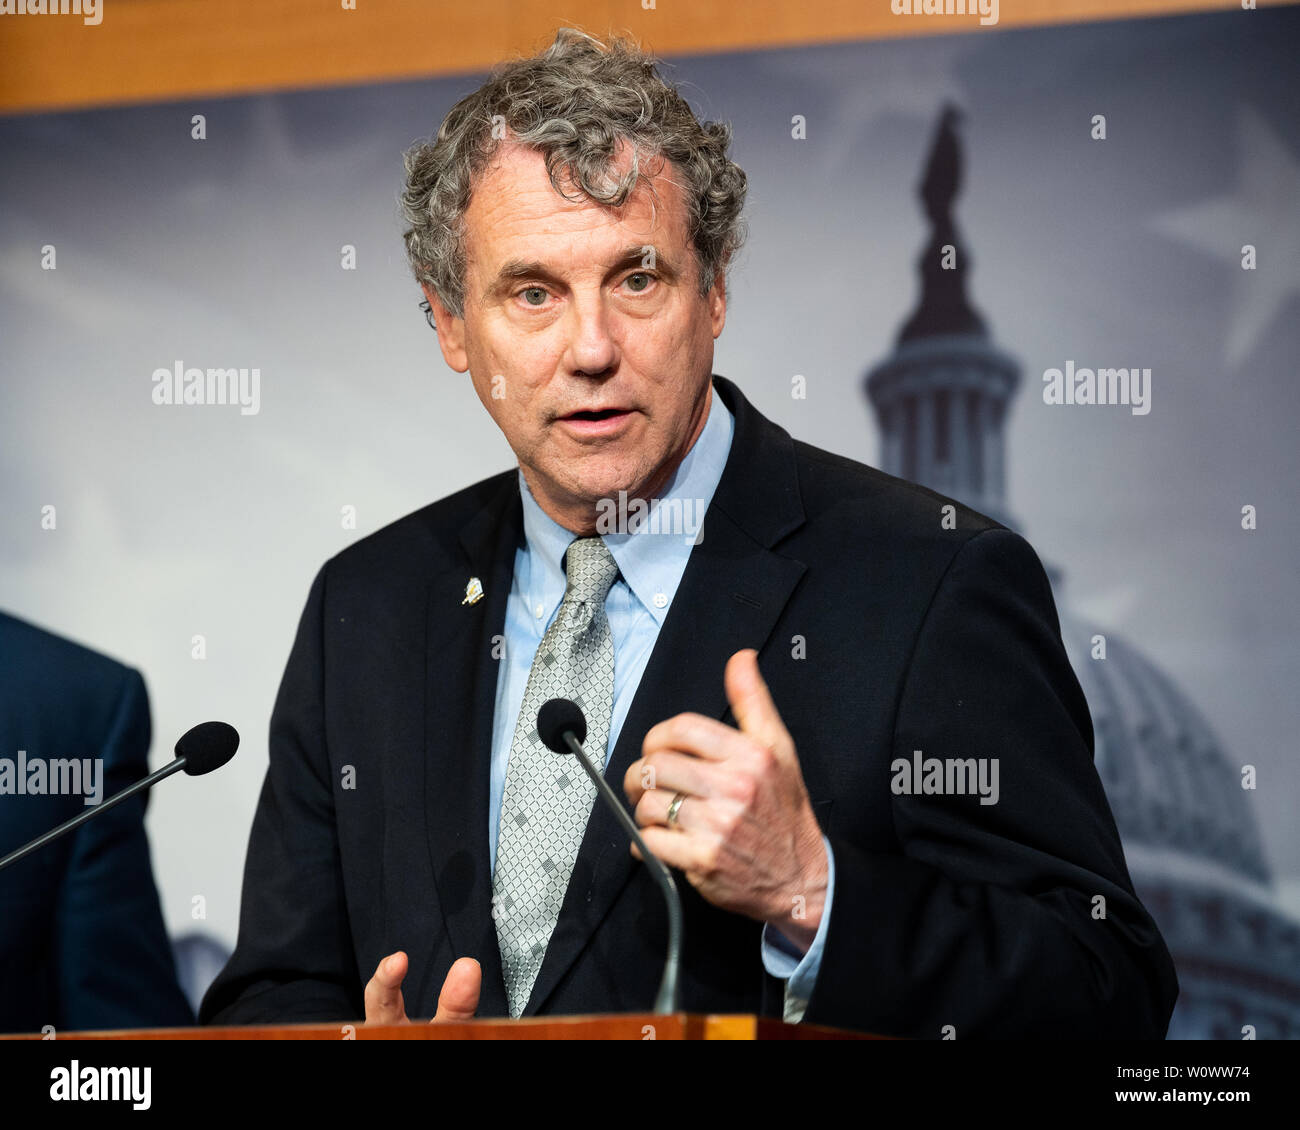 Washington, United States. 27th June, 2019. U.S. Senator Sherrod Brown (D-OH) speaking at a press conference on sanctions on North Korea in the National Defense Authorization Act at the US Capitol in Washington, DC. Credit: SOPA Images Limited/Alamy Live News Stock Photo